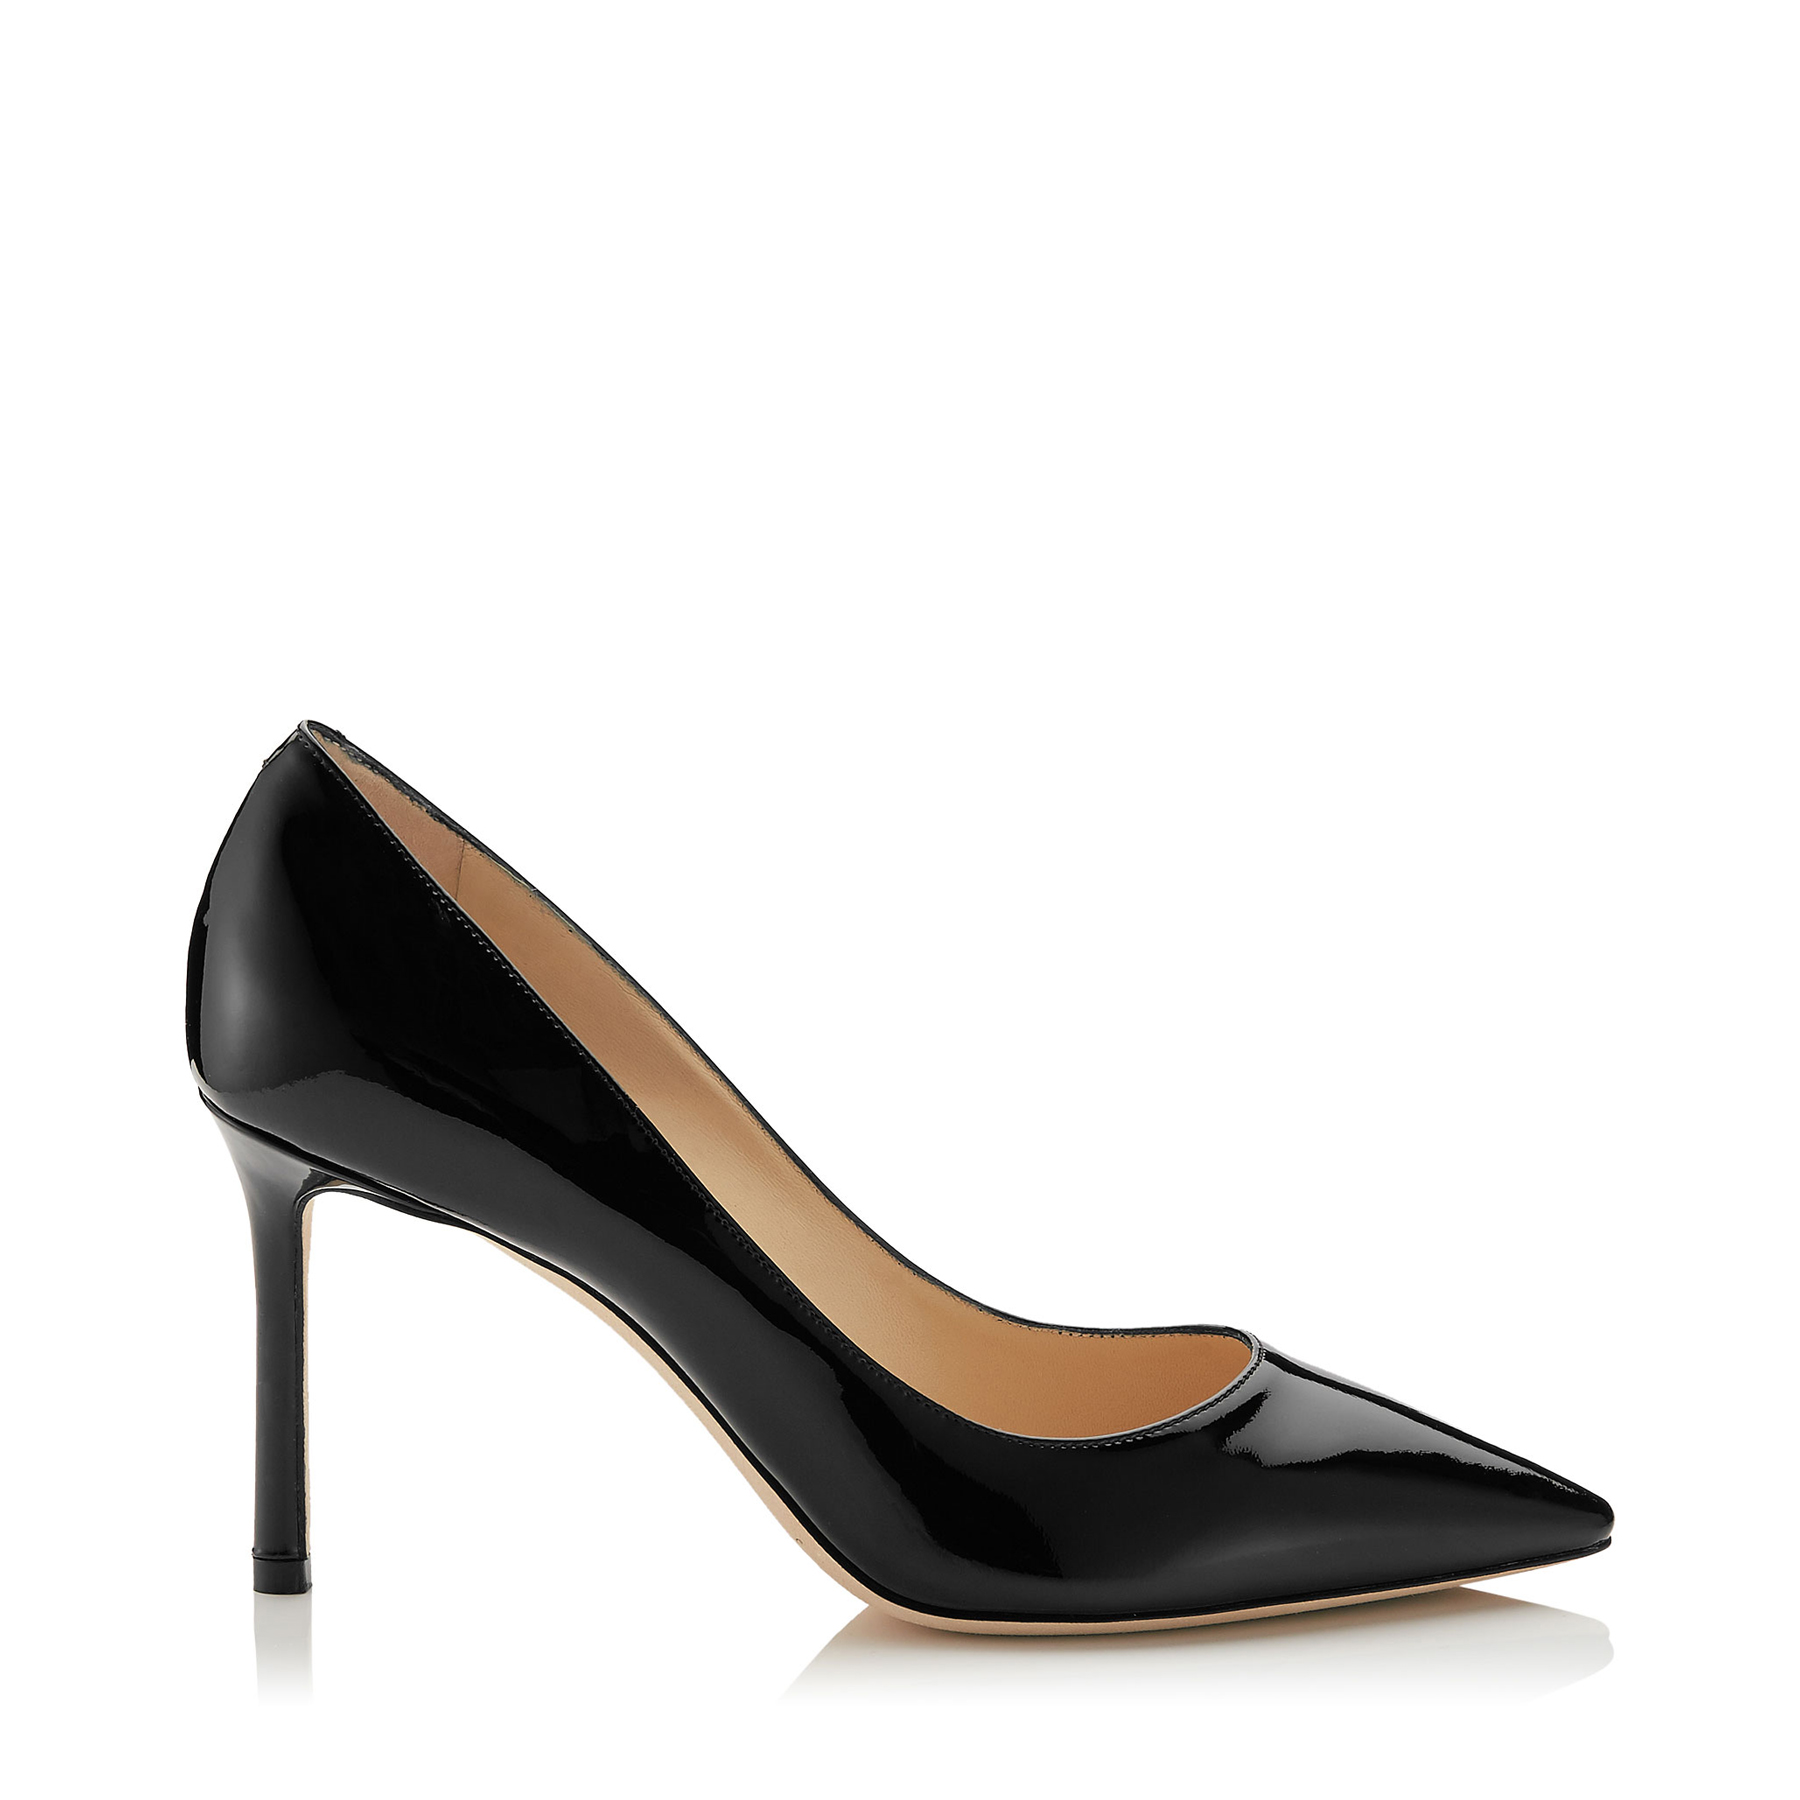 ROMY 85 Black Patent Leather Pointy Toe Pumps